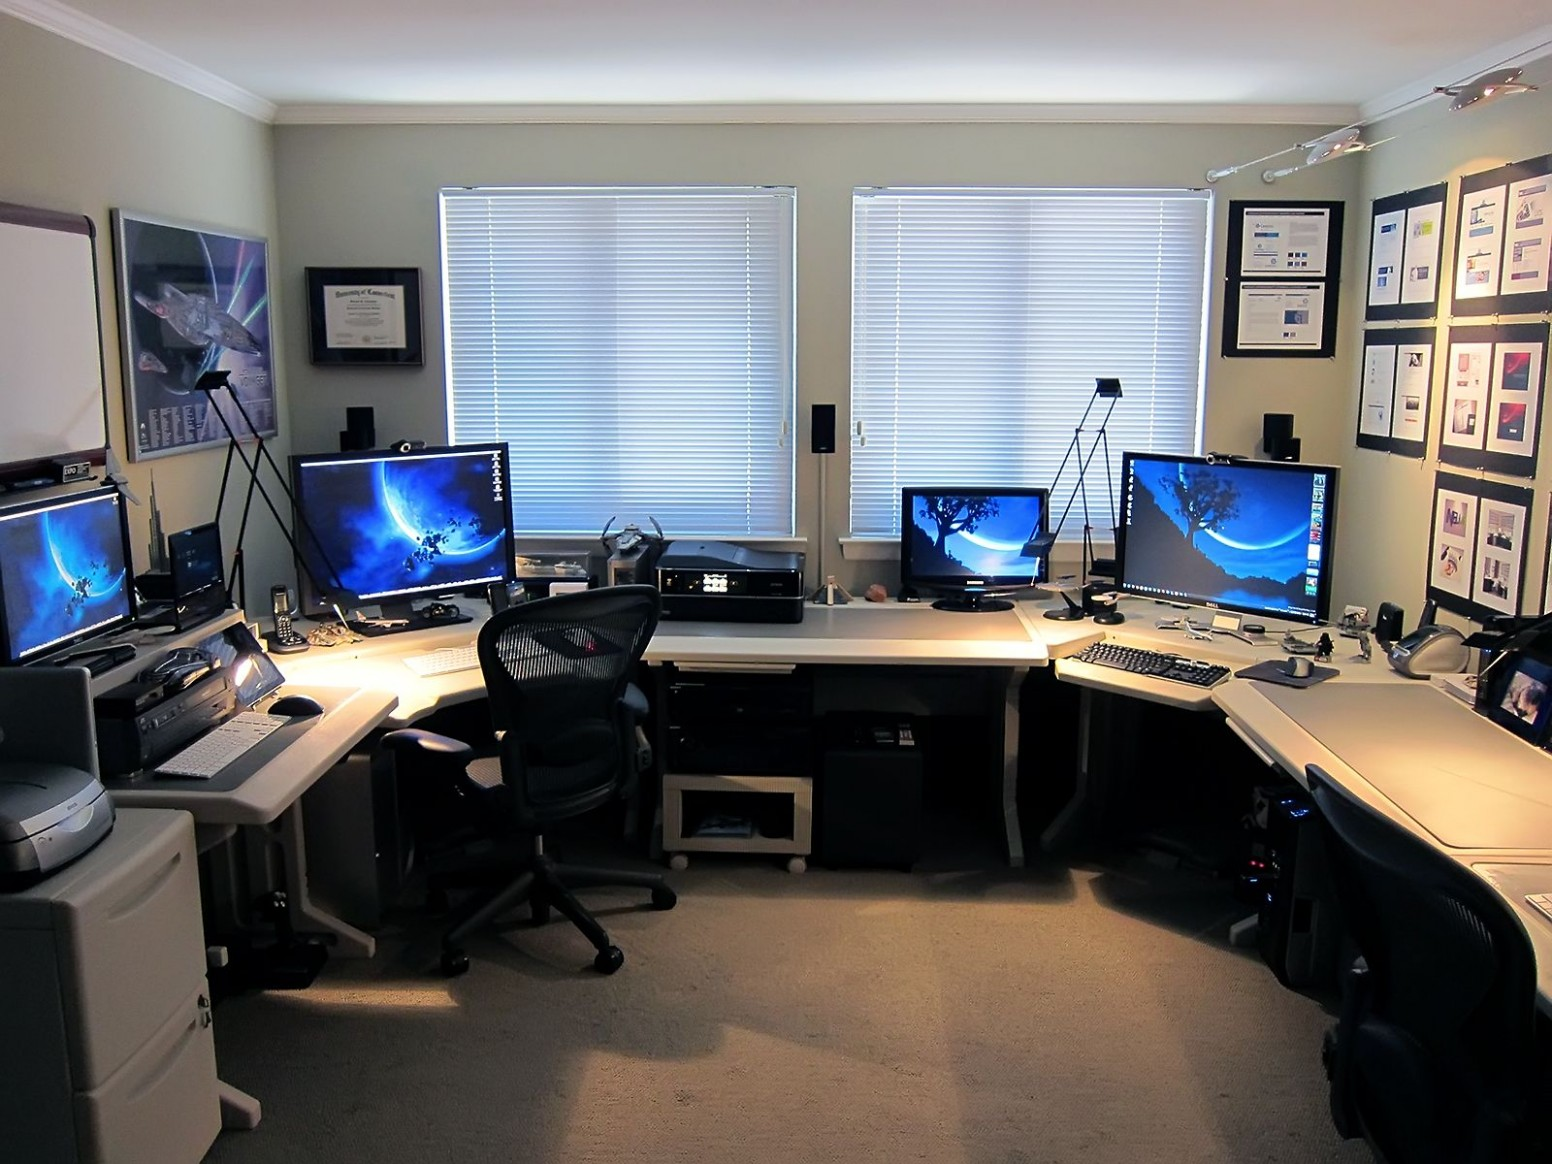 Home Office Design Multiple Monitors I andryhome